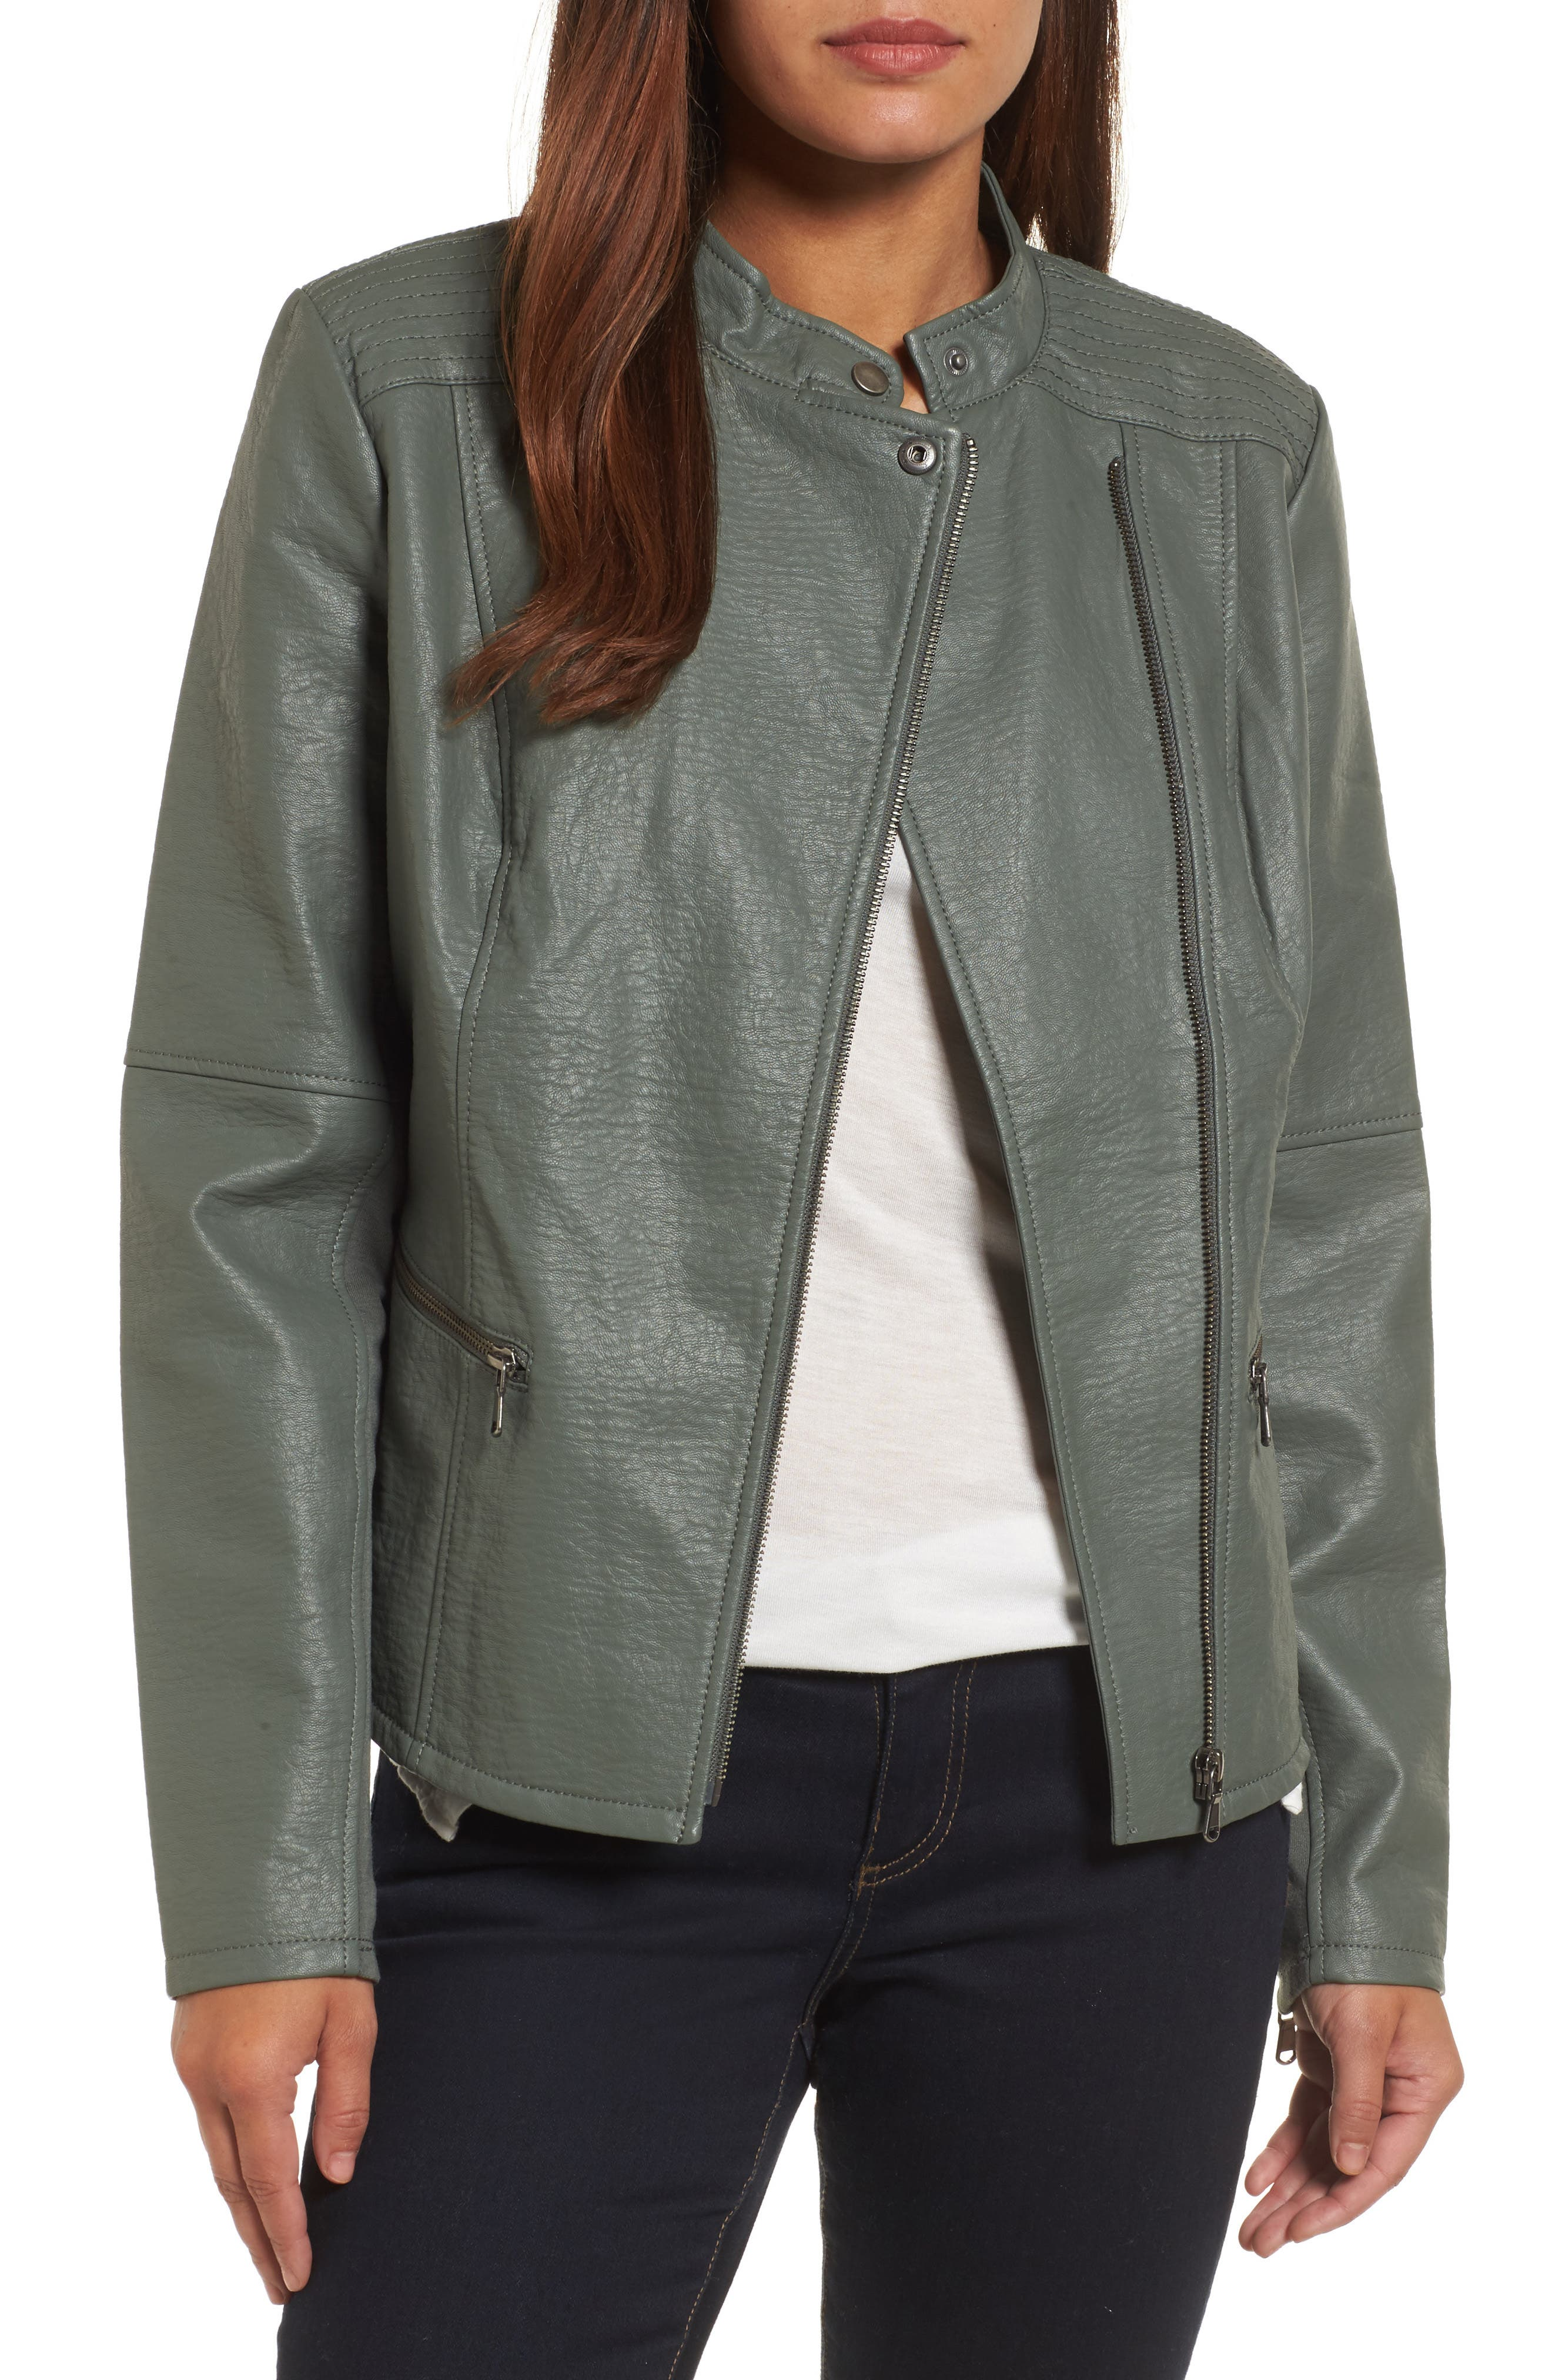 Alternate Image 1 Selected - NIC+ZOE City Chic Faux Leather Jacket